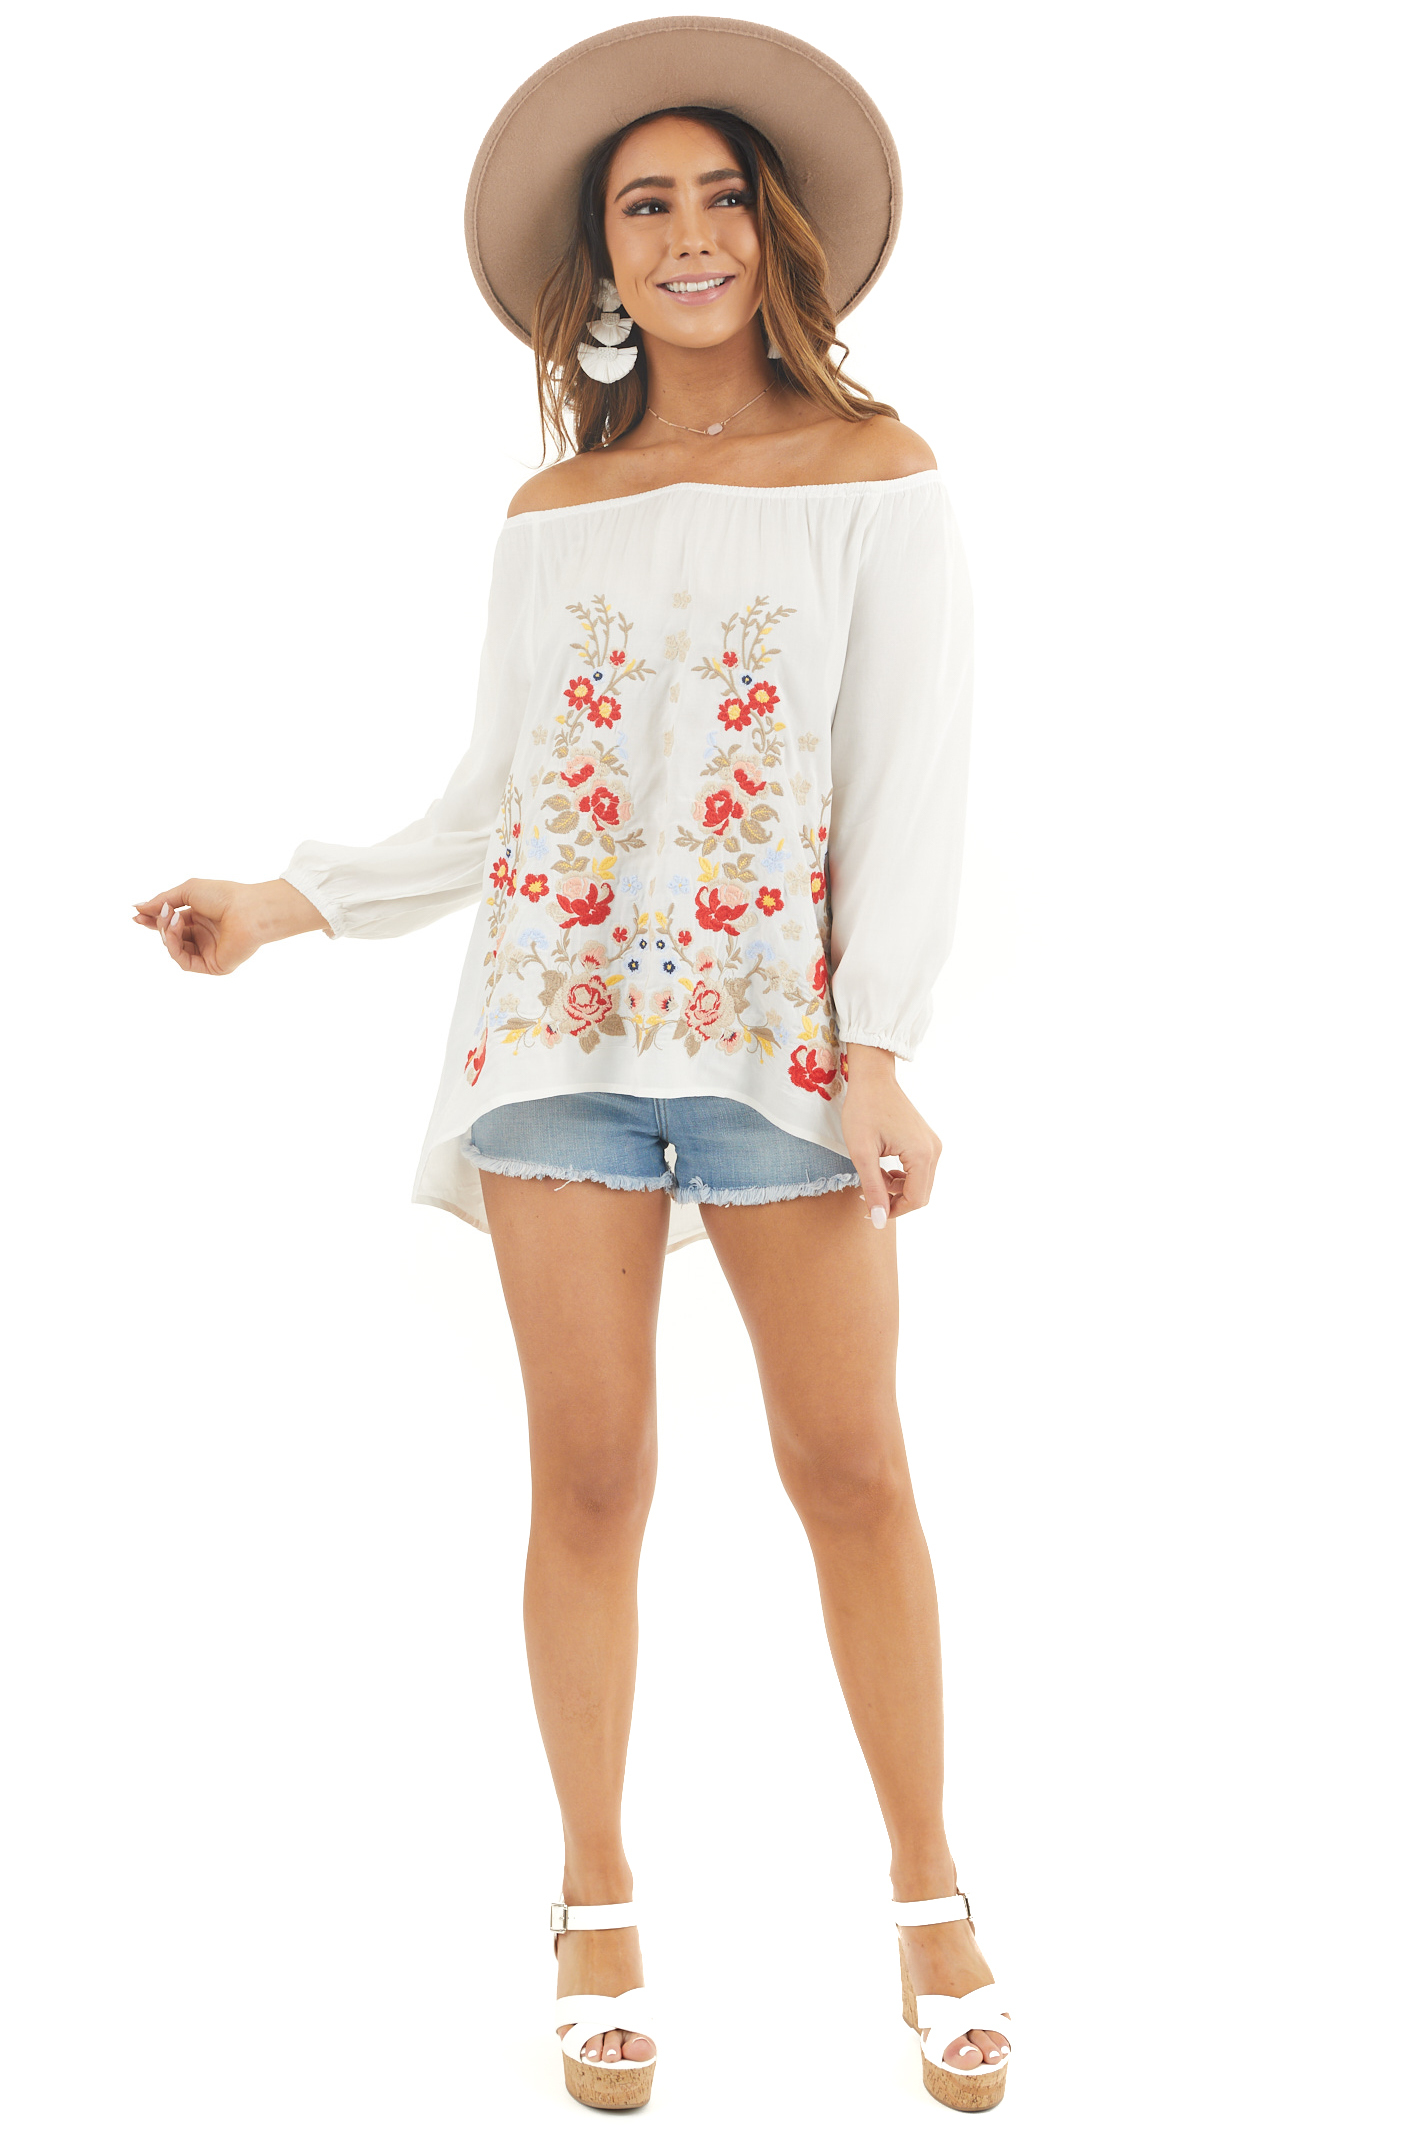 Pearl White Off the Shoulder Top with Embroidery Details